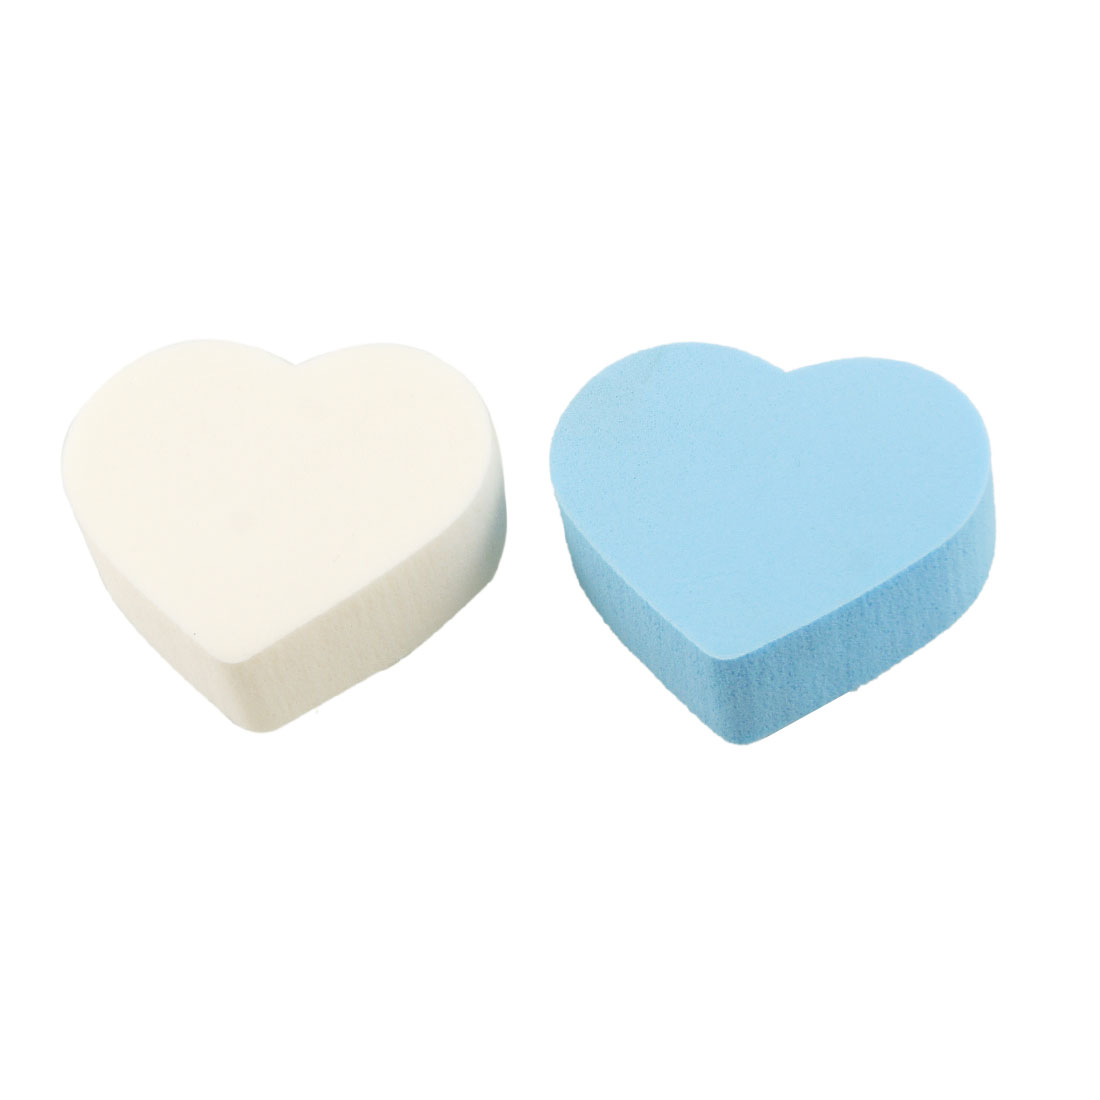 2 Pcs White Blue Heart Shaped Face Care Cosmetic Powder Puff